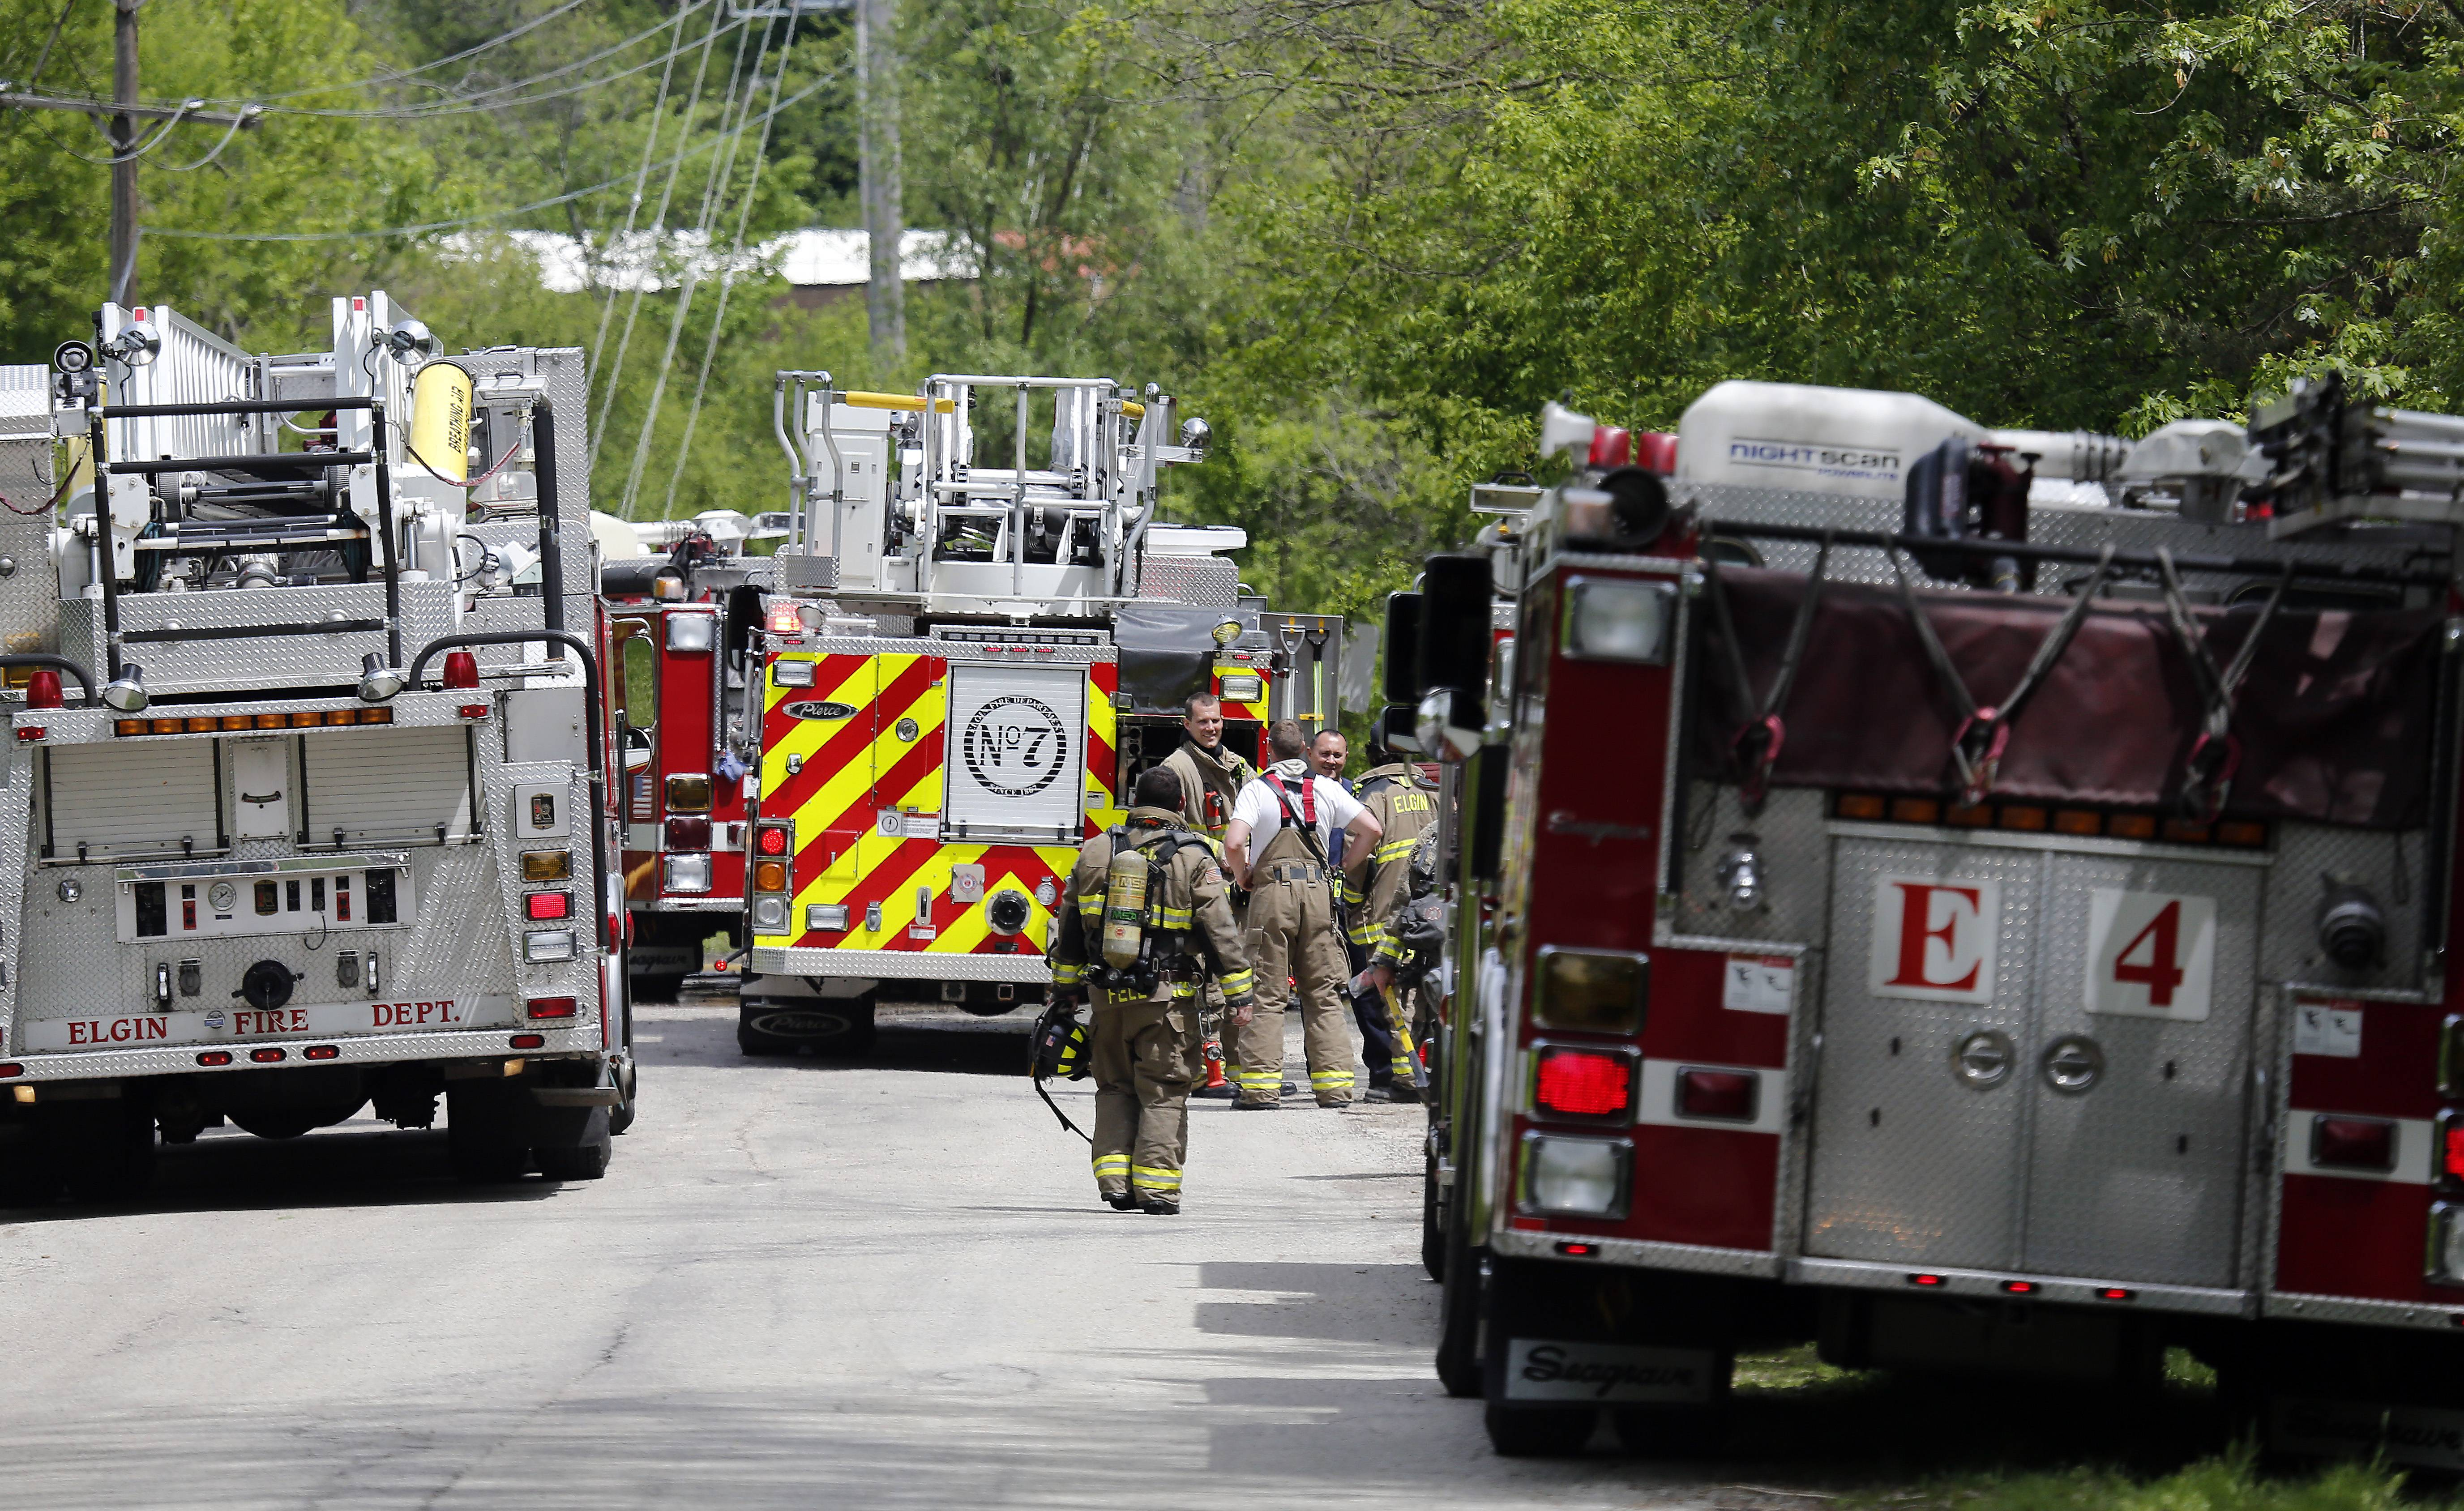 Fire trucks surround a home on Jerusha Avenue in Elgin Thursday afternoon as firefighters tried to put out a house fire. No one was injured, but two pets were lost in the blaze that left the house uninhabitable.